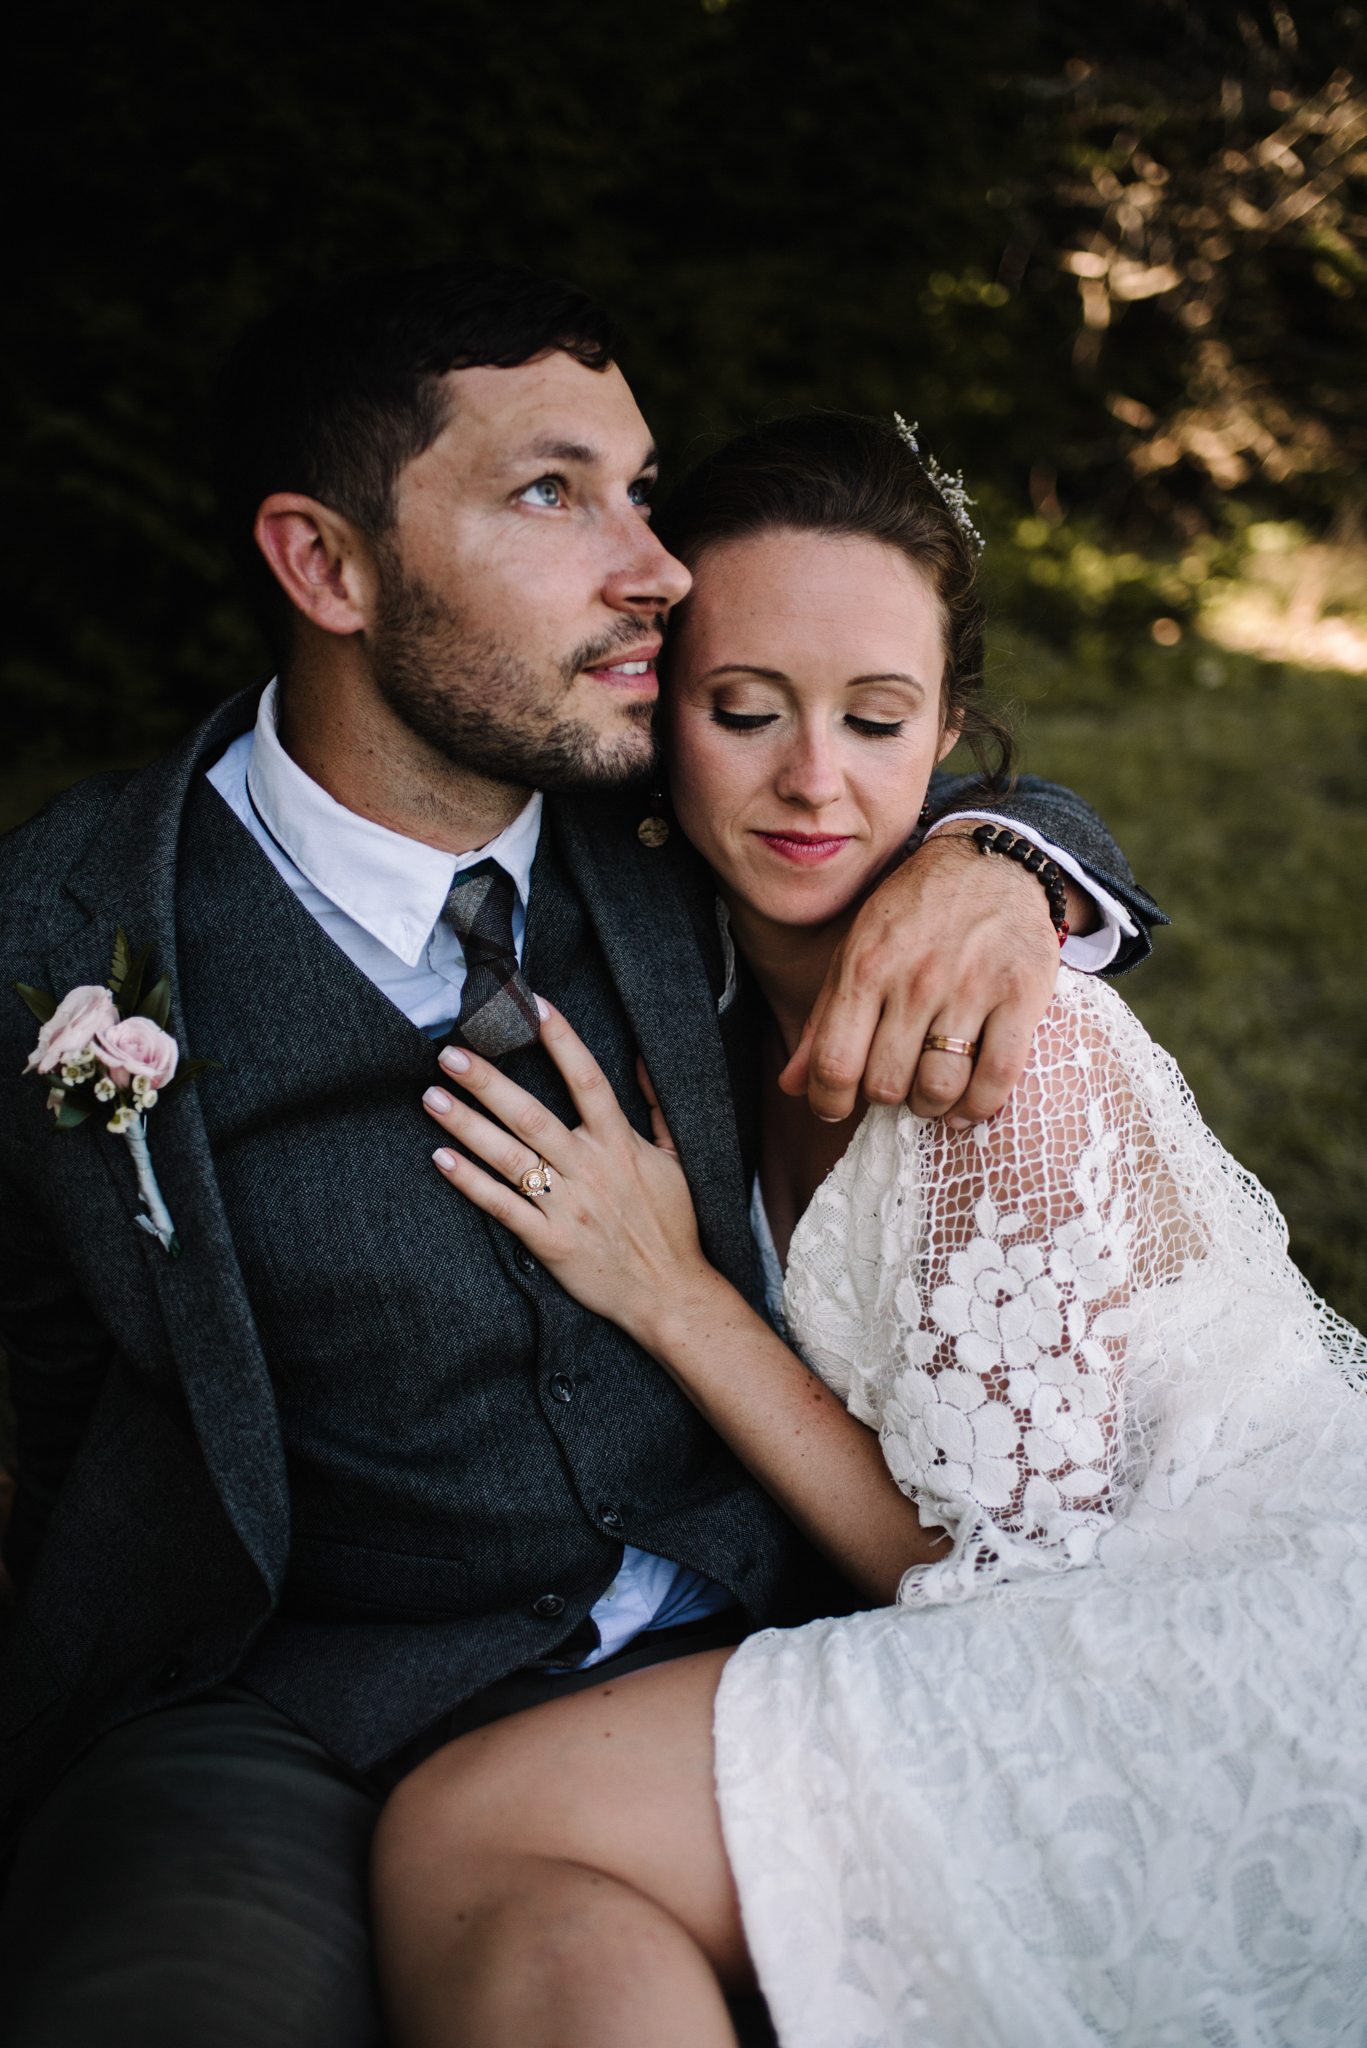 Shenandoah National Park Elopement Wedding Photographer and Planner_113.jpg